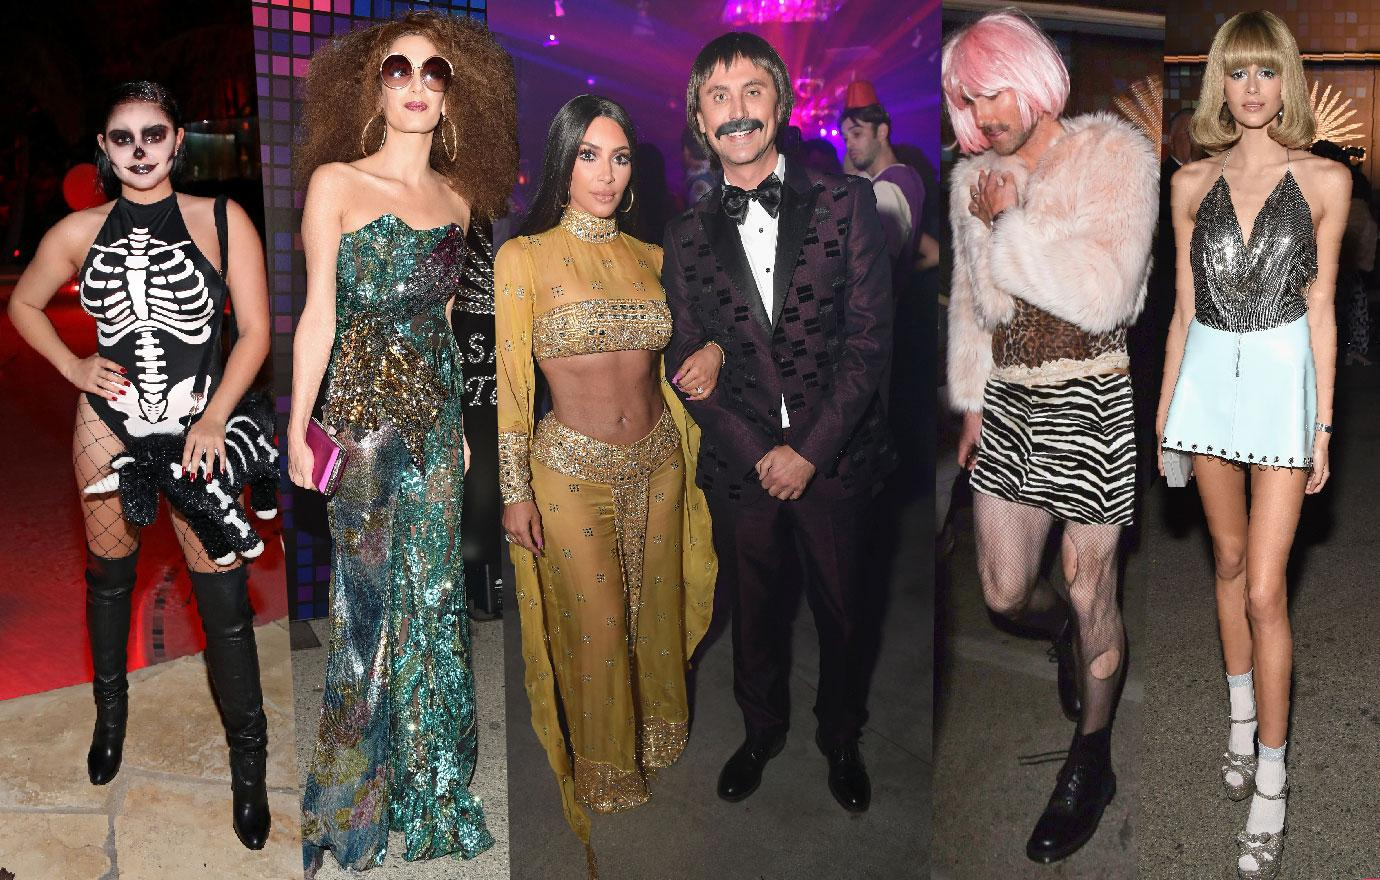 Stars Halloween Dress Up Amal Clooney 1970s Adam Levine In Drag